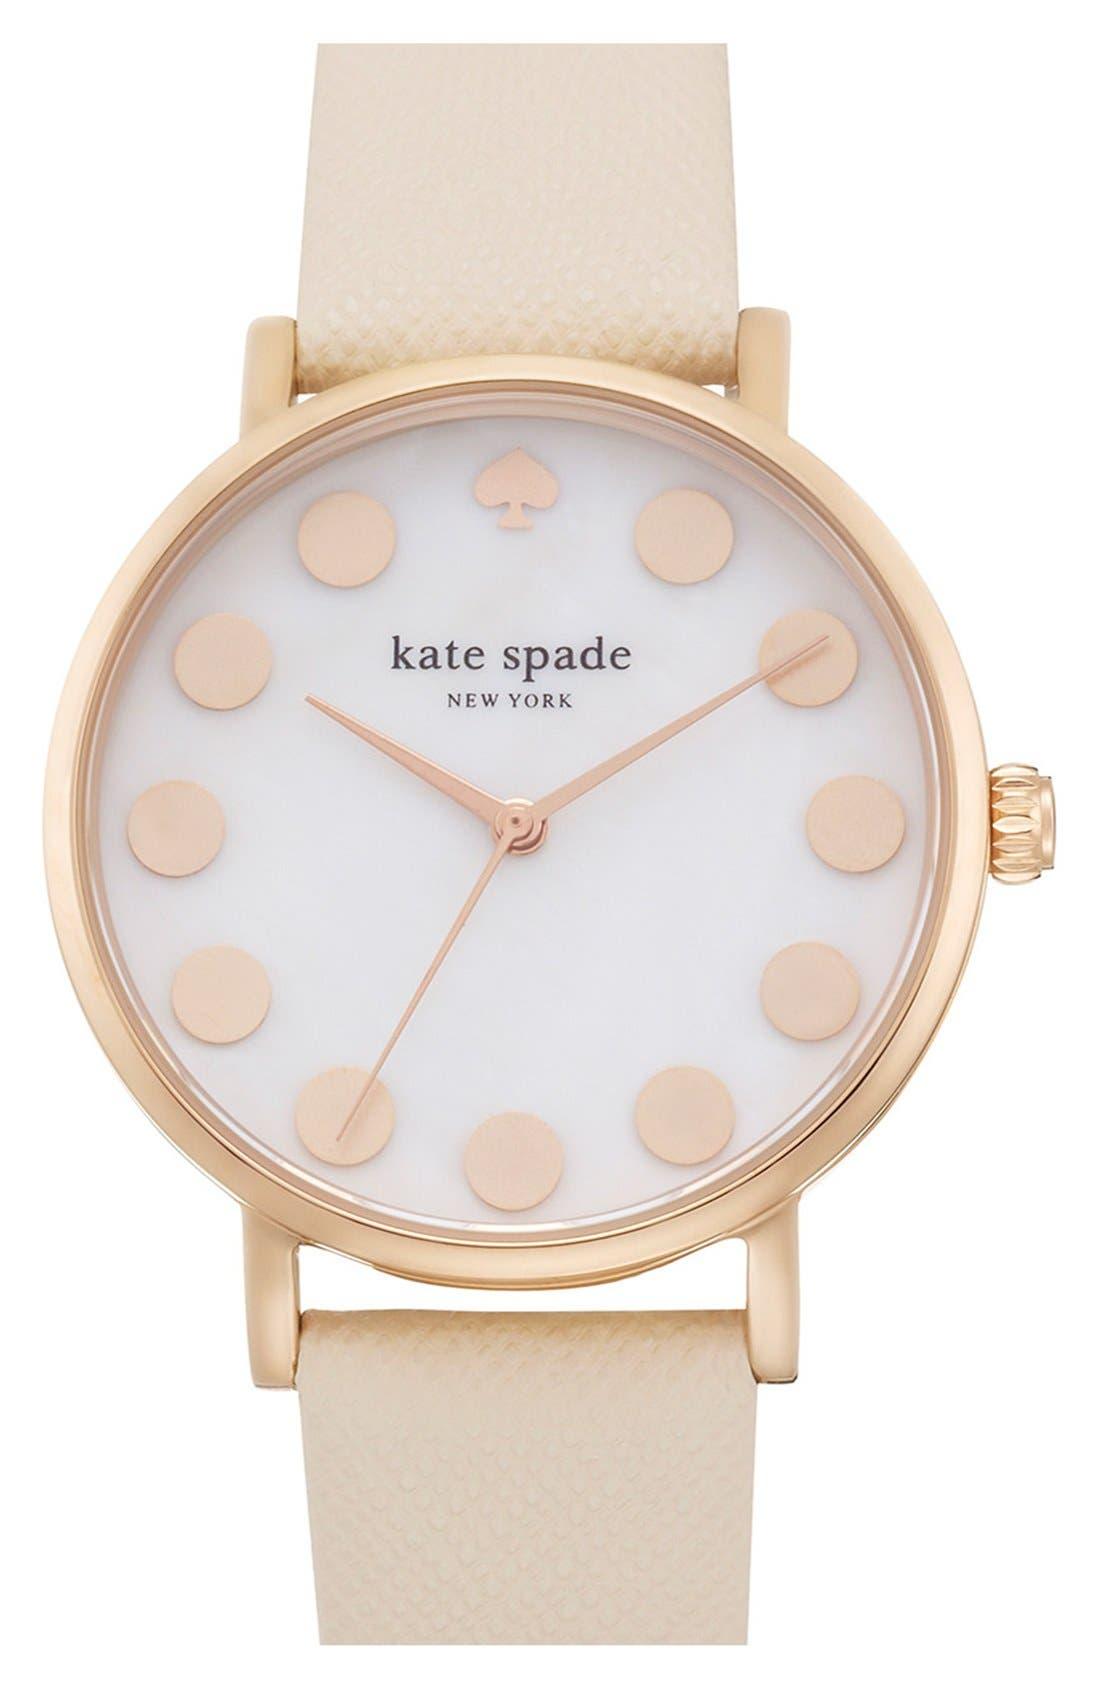 Alternate Image 1 Selected - kate spade new york 'metro' boxed dot dial watch & straps set, 34mm (Nordstrom Exclusive)